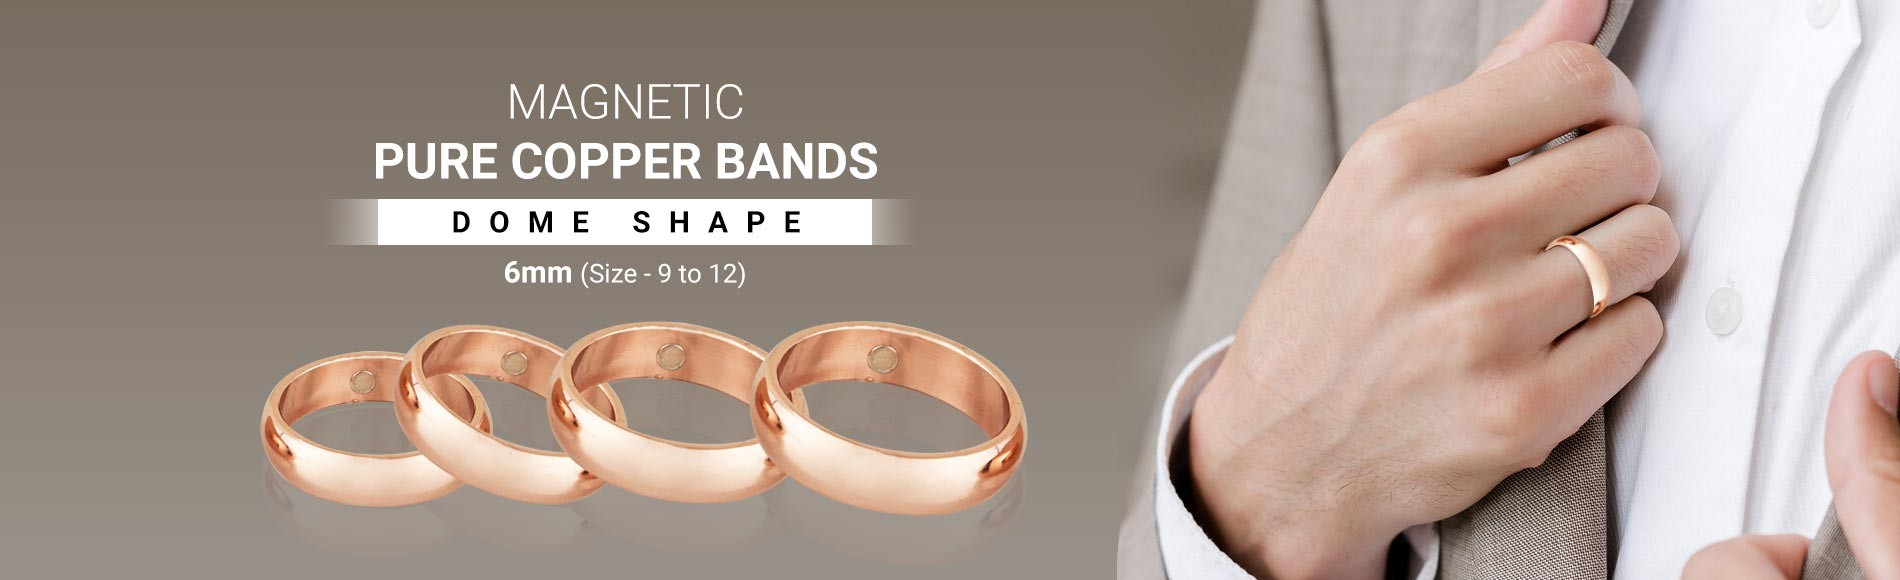 Magnetic Pure Copper Bands